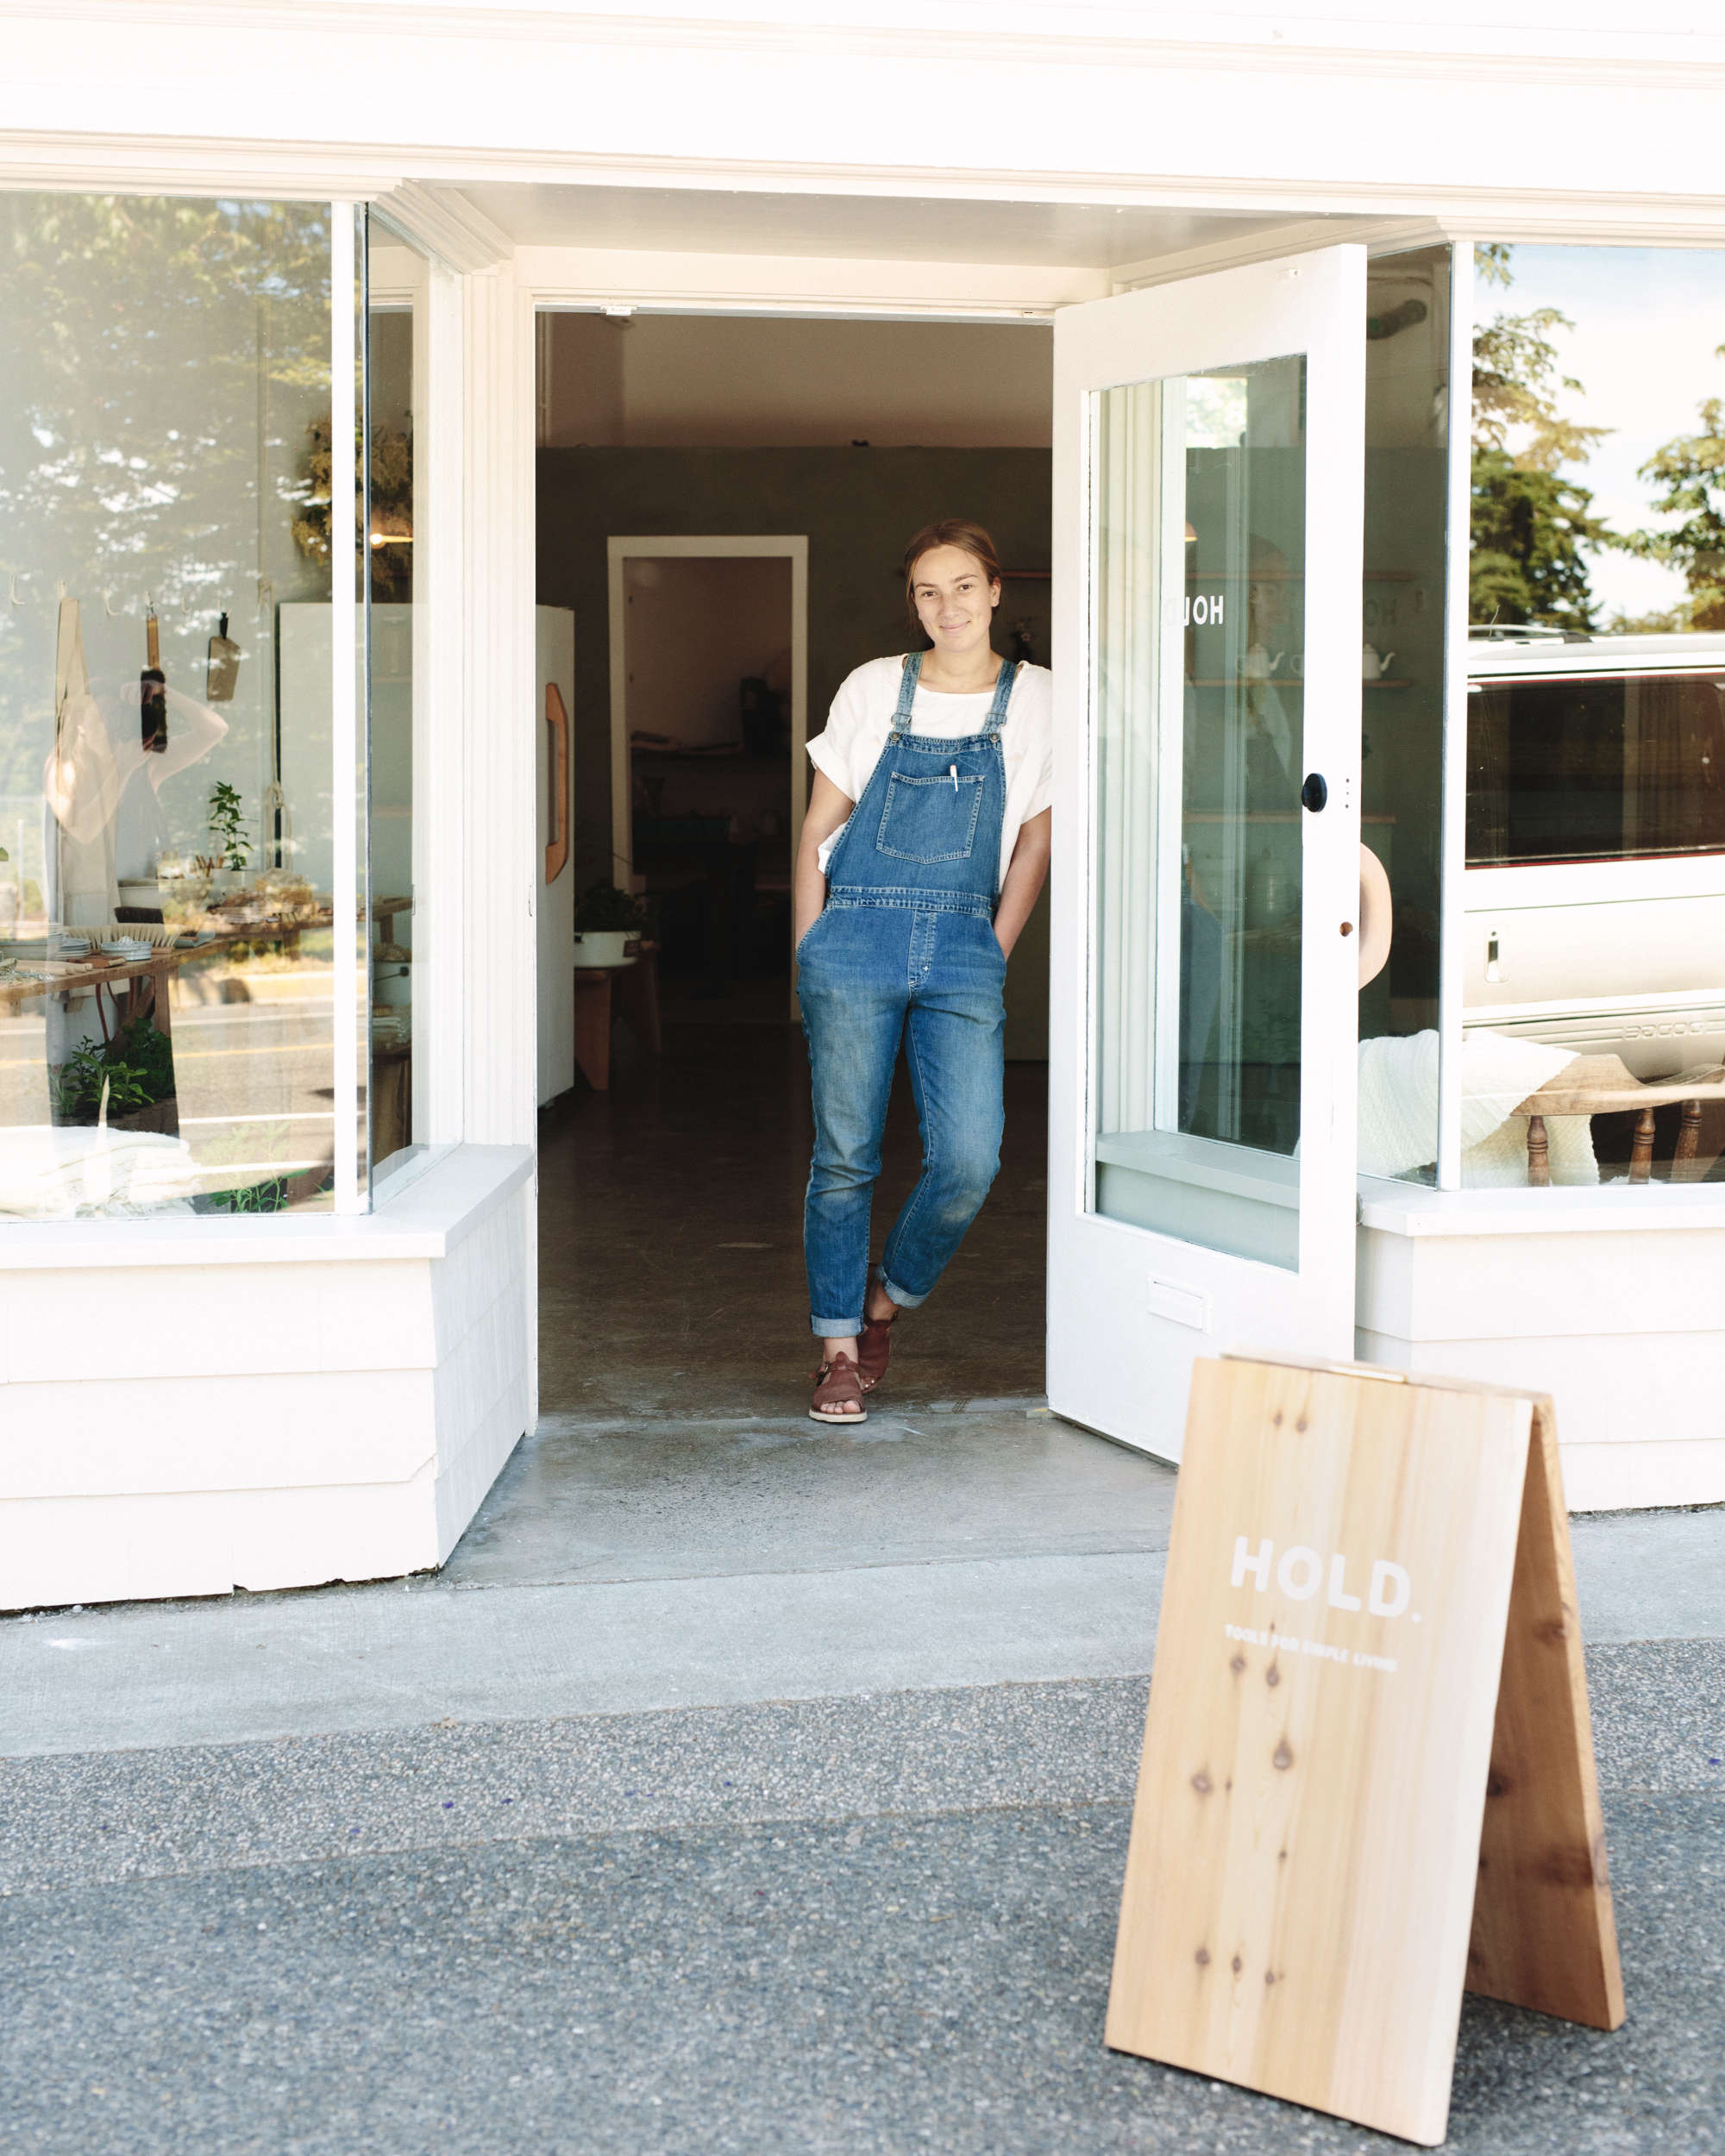 shopper u0027s diary fresh from the farm at hold general store